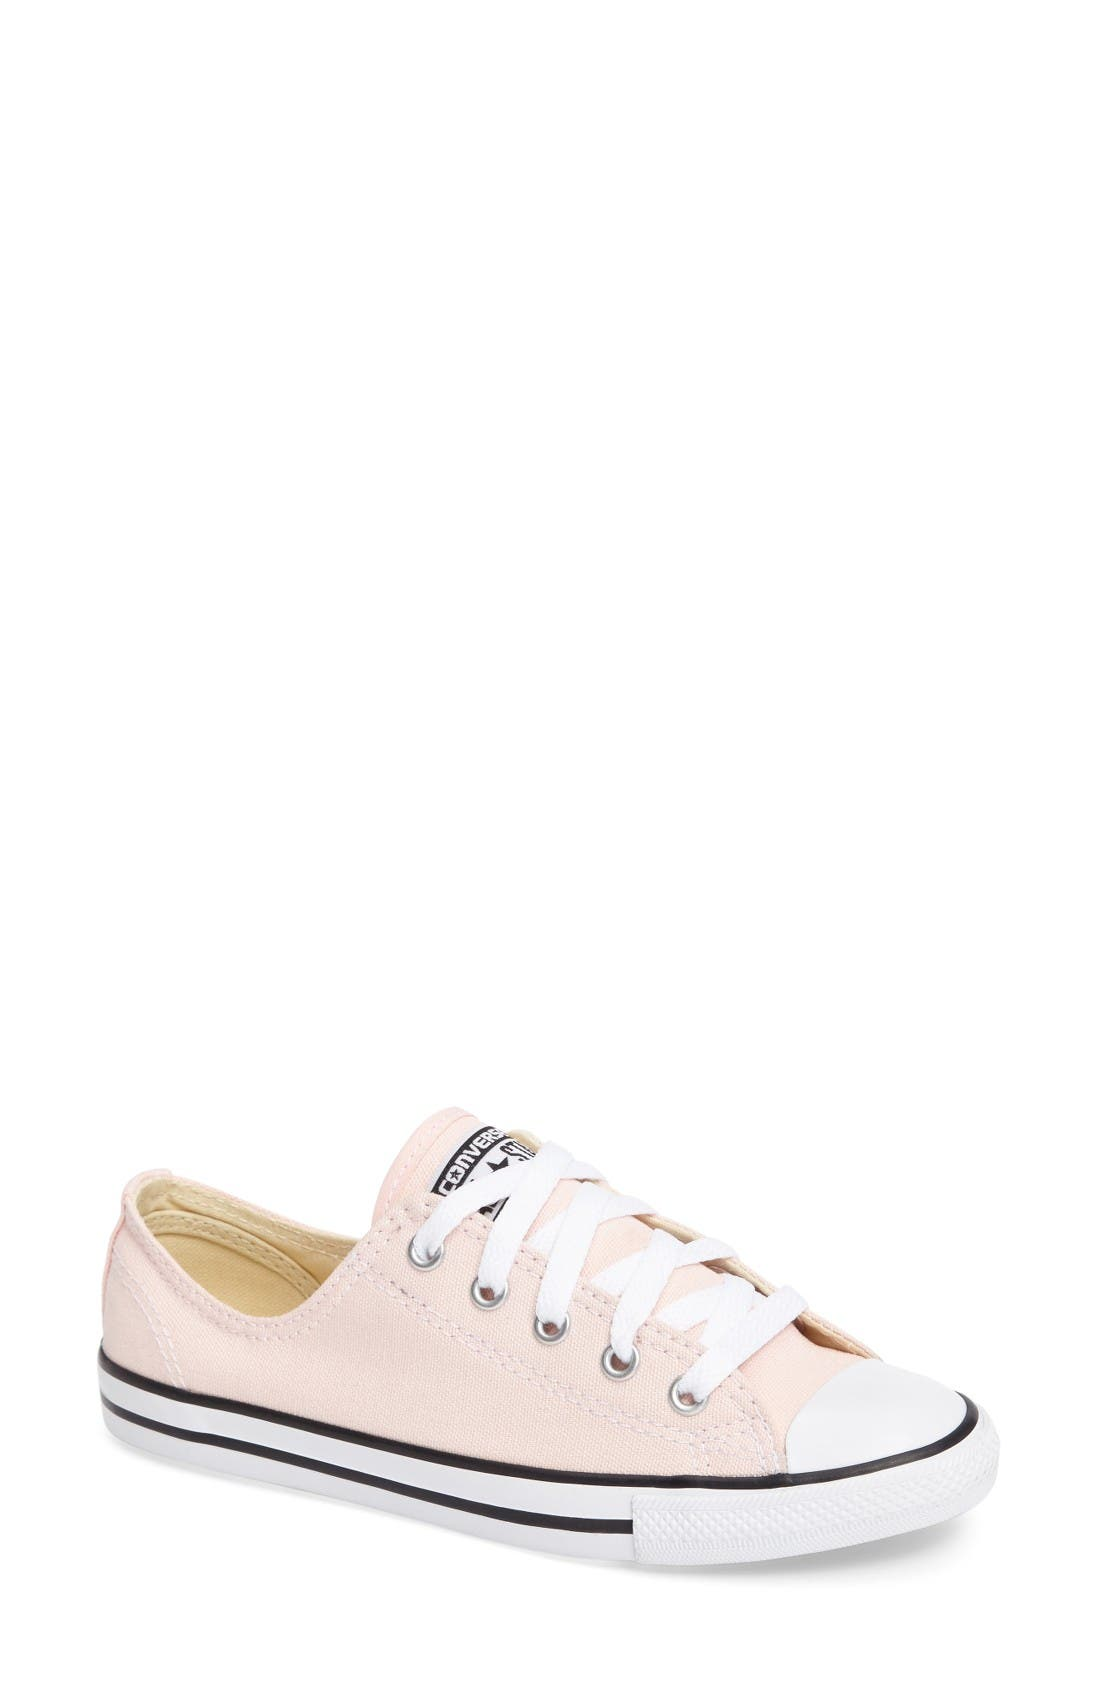 Alternate Image 1 Selected - Converse Chuck Taylor® All Star® 'Dainty' Low Top Sneaker (Women)